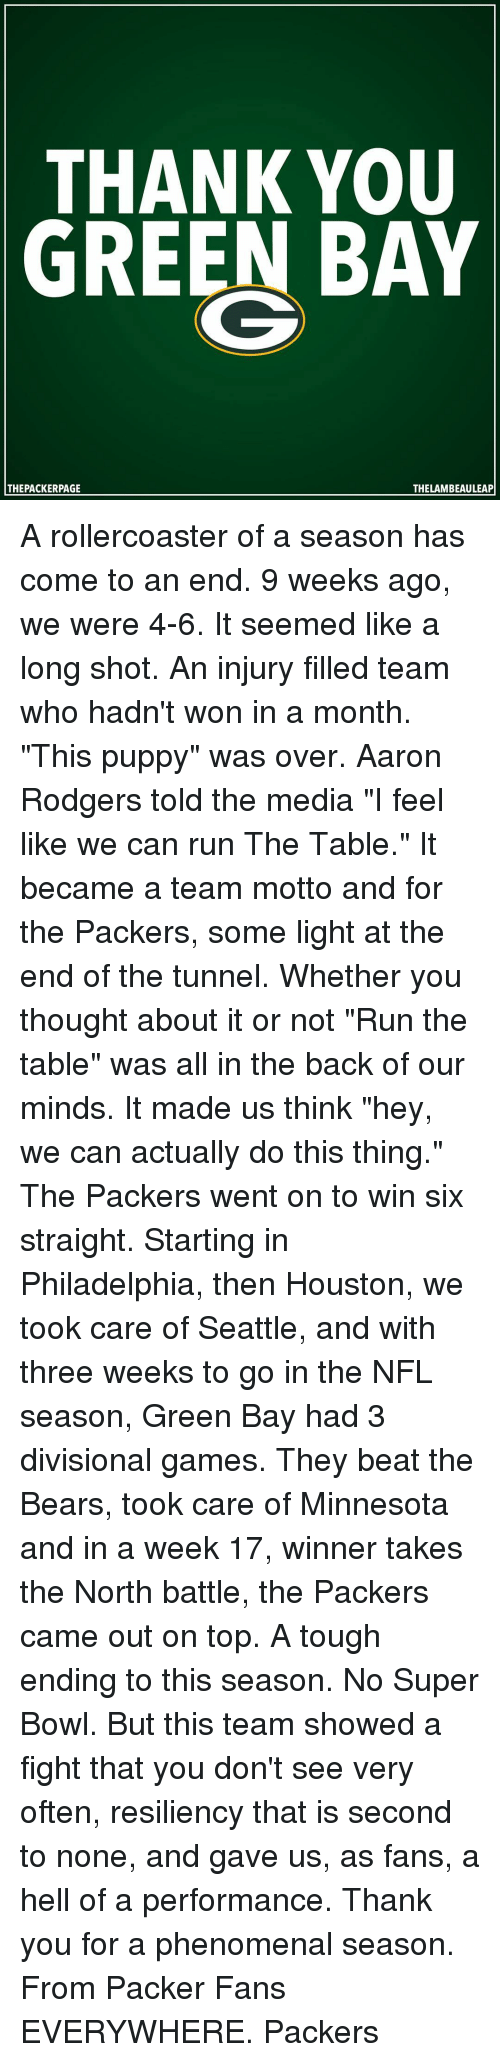 "Rodgering: THANK YOU  GREEN BAY  THE PACKERPAGE  THELAMBEAULEAP A rollercoaster of a season has come to an end. 9 weeks ago, we were 4-6. It seemed like a long shot. An injury filled team who hadn't won in a month. ""This puppy"" was over. Aaron Rodgers told the media ""I feel like we can run The Table."" It became a team motto and for the Packers, some light at the end of the tunnel. Whether you thought about it or not ""Run the table"" was all in the back of our minds. It made us think ""hey, we can actually do this thing."" The Packers went on to win six straight. Starting in Philadelphia, then Houston, we took care of Seattle, and with three weeks to go in the NFL season, Green Bay had 3 divisional games. They beat the Bears, took care of Minnesota and in a week 17, winner takes the North battle, the Packers came out on top. A tough ending to this season. No Super Bowl. But this team showed a fight that you don't see very often, resiliency that is second to none, and gave us, as fans, a hell of a performance. Thank you for a phenomenal season. From Packer Fans EVERYWHERE. Packers"